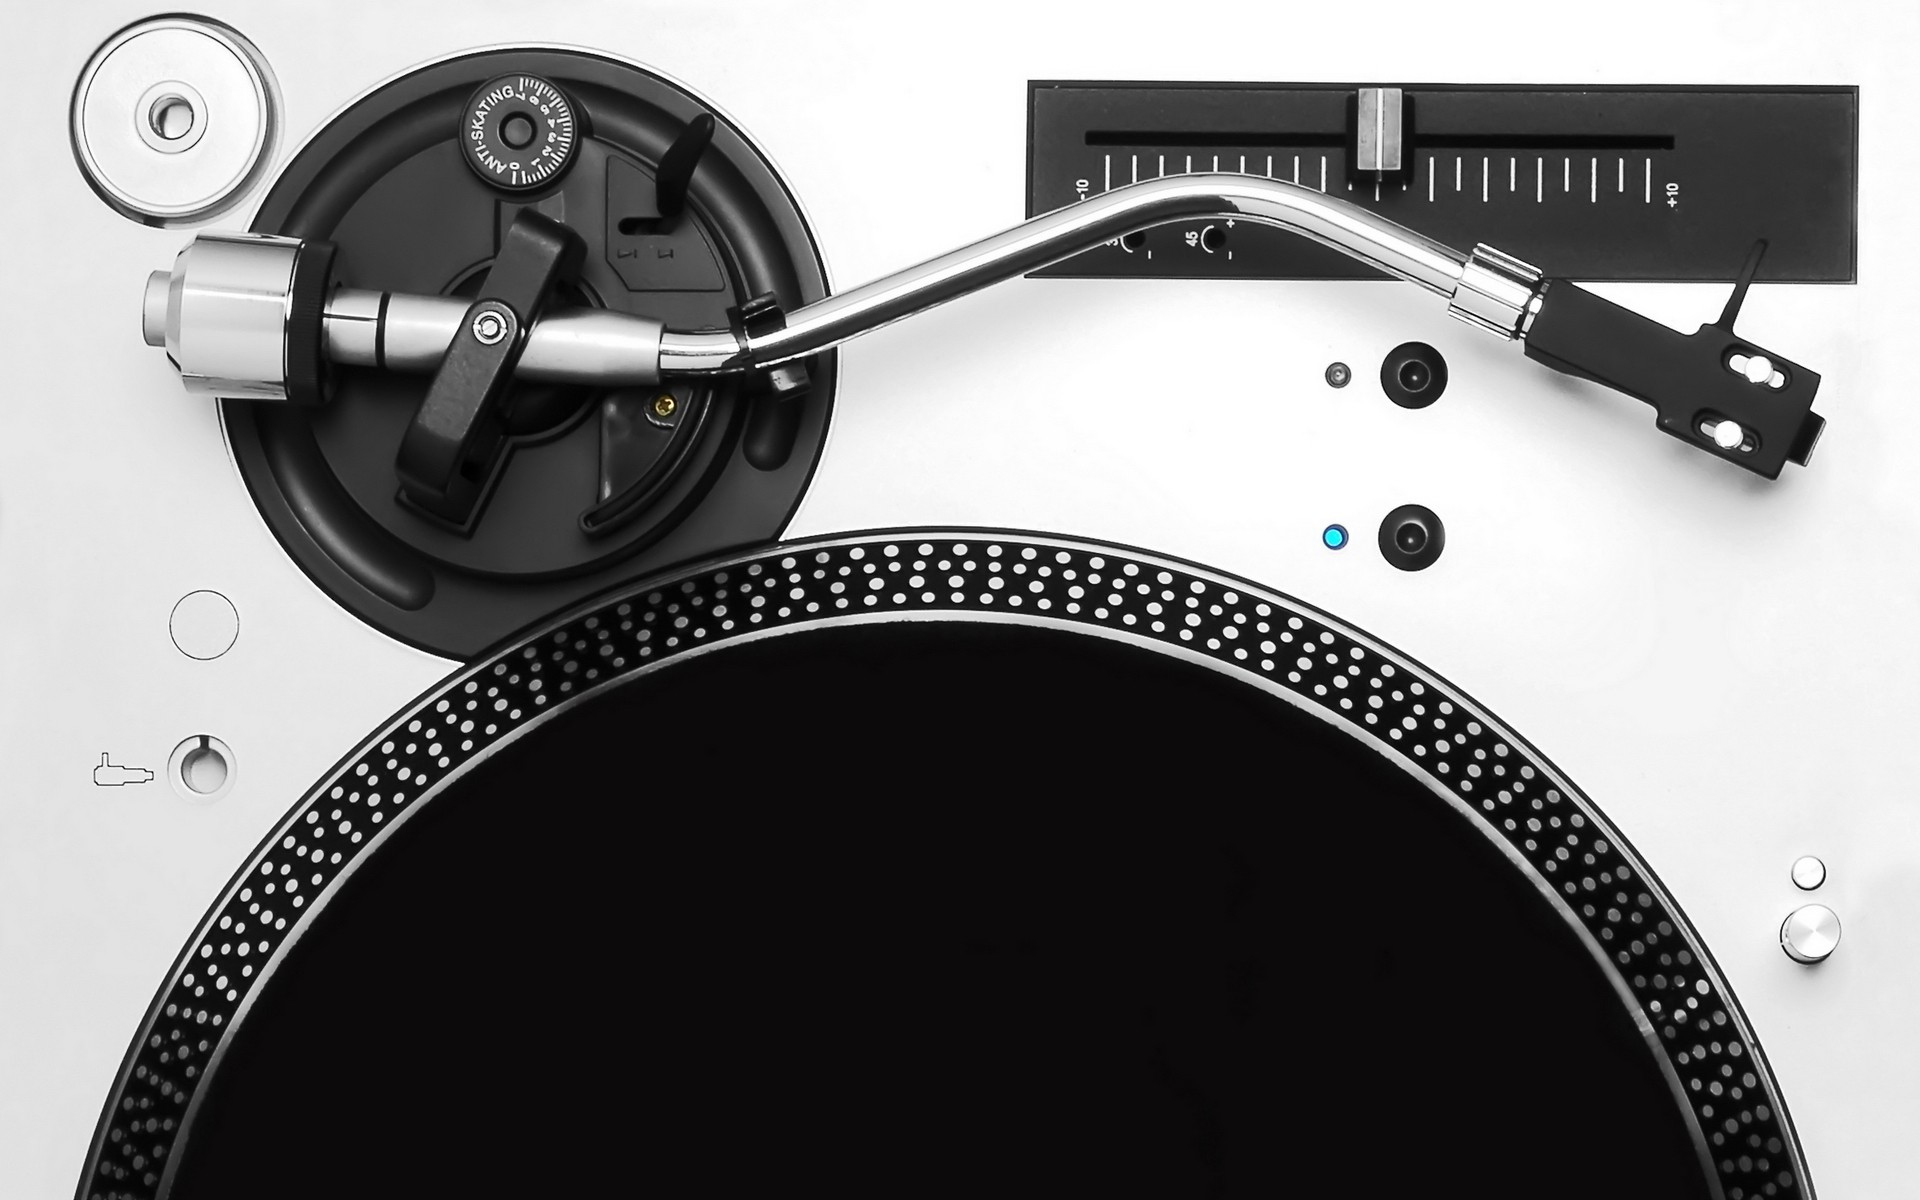 Turntable and Needle widescreen wallpaper  WideWallpapers  : Cool Turntable Wallpapers 1920x1200